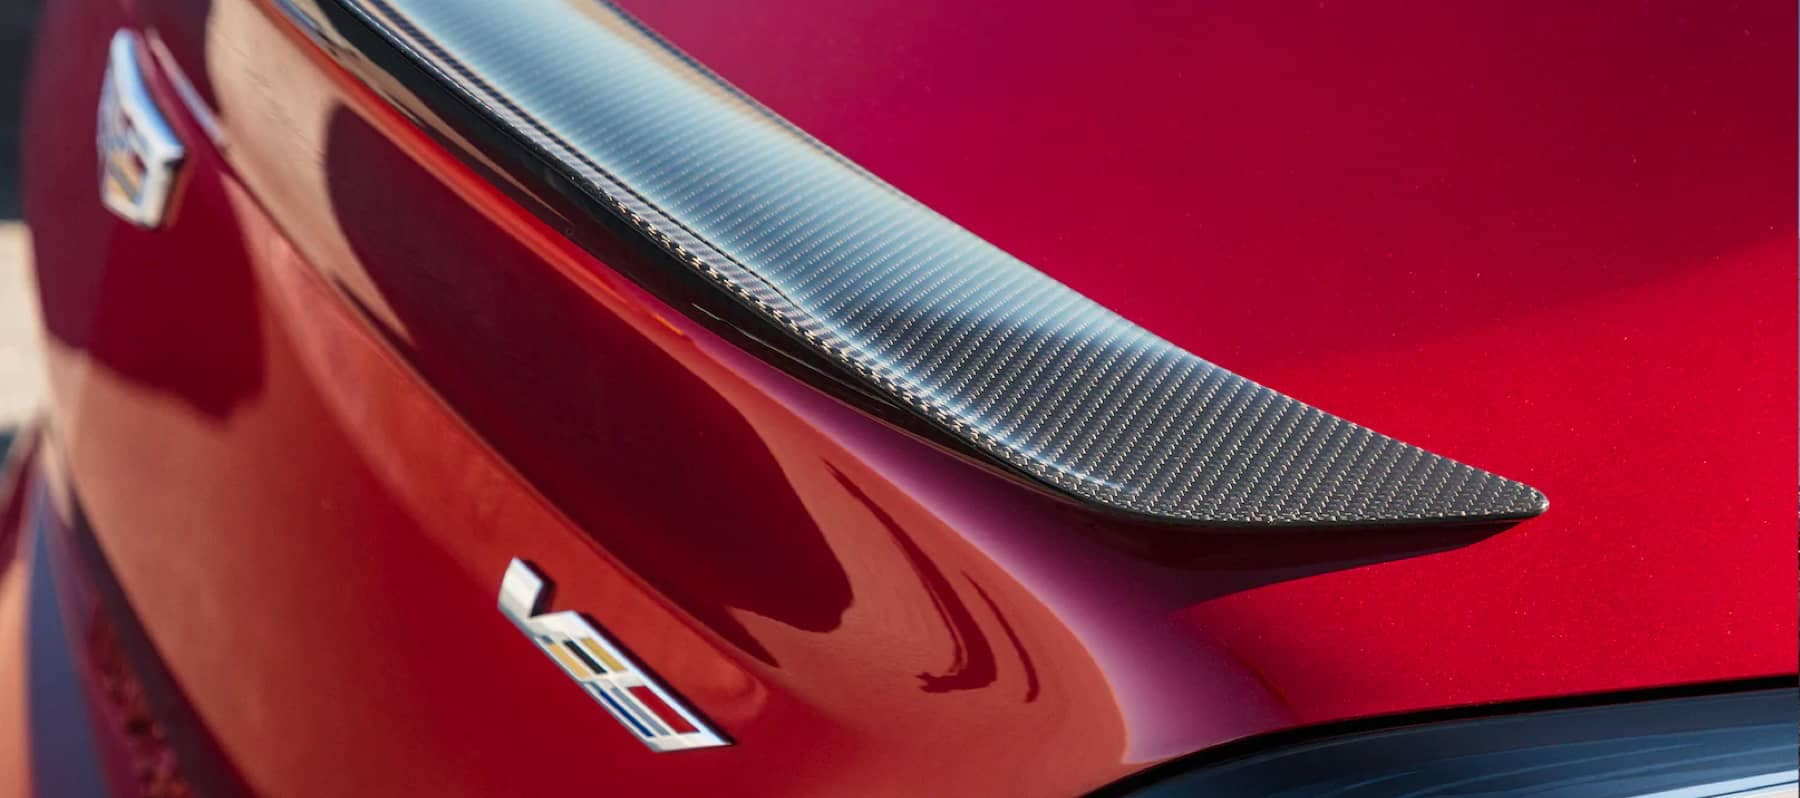 An exterior shot of a Cadillac rear fender red